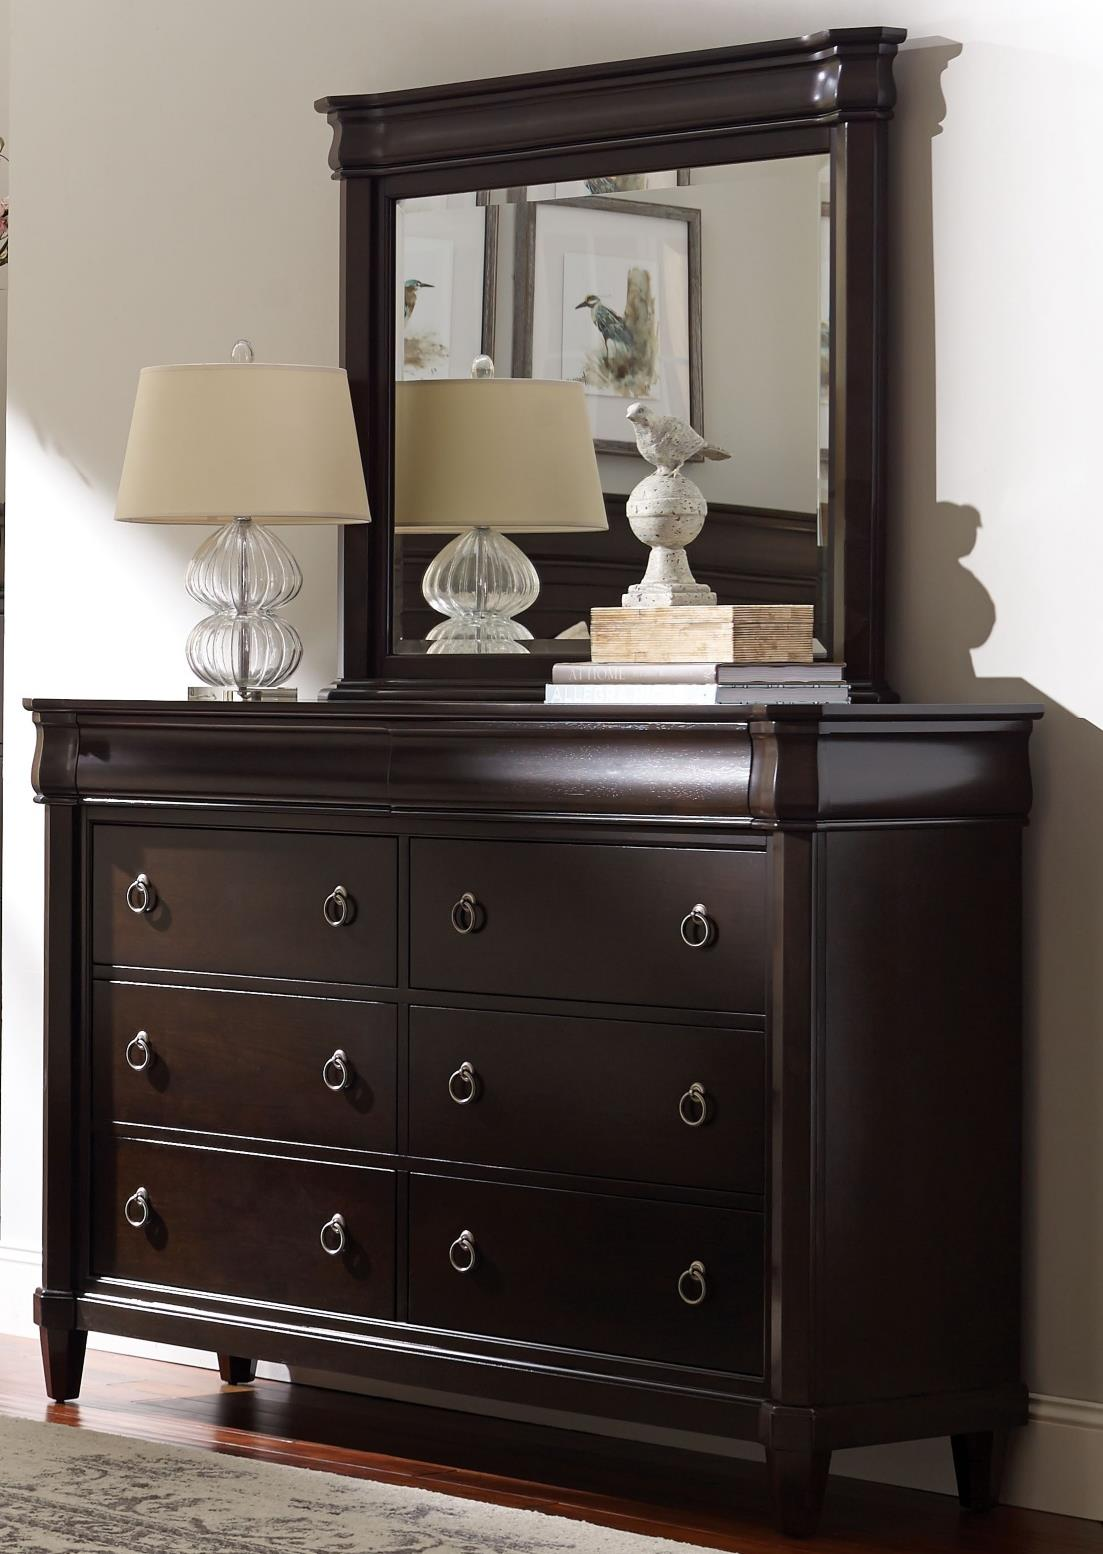 Broyhill Furniture Aryell Dresser + Mirror - Item Number: 4907-230+236